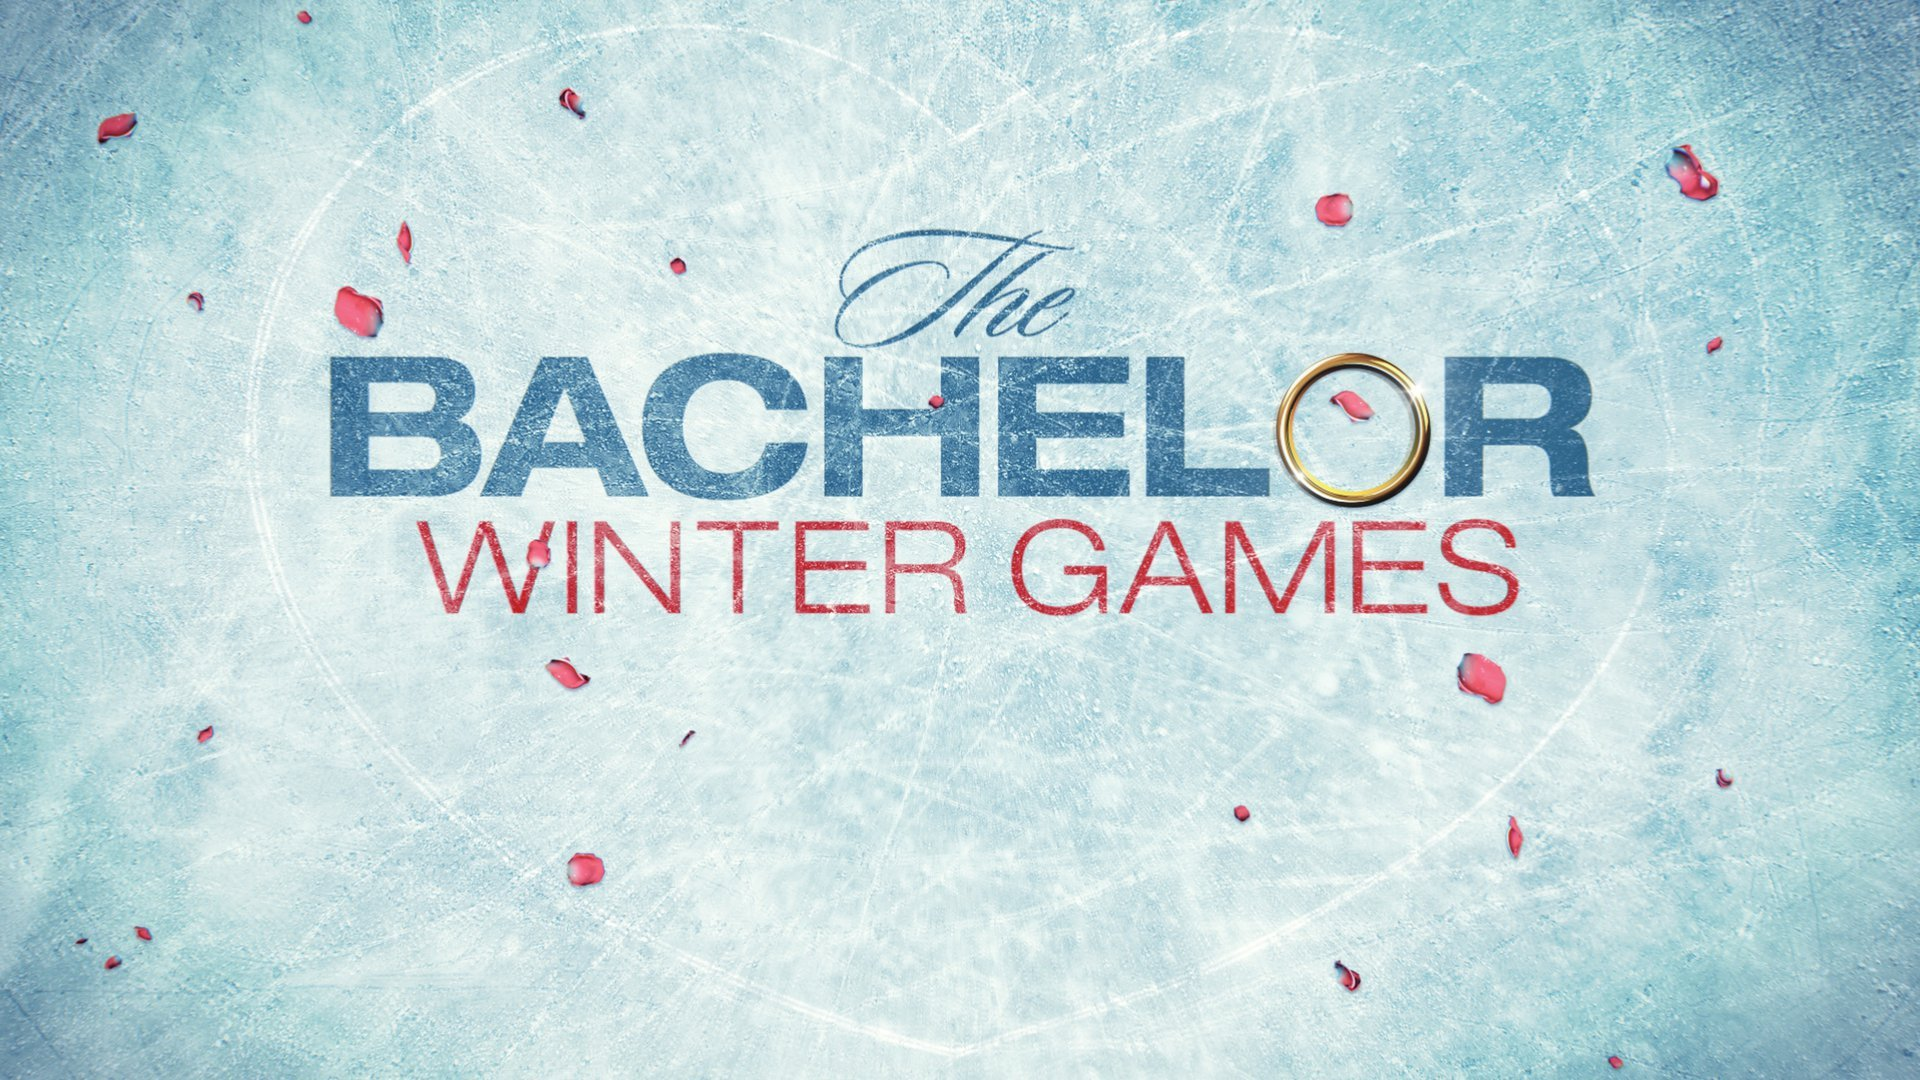 The Bachelor Winter Games (ABC)